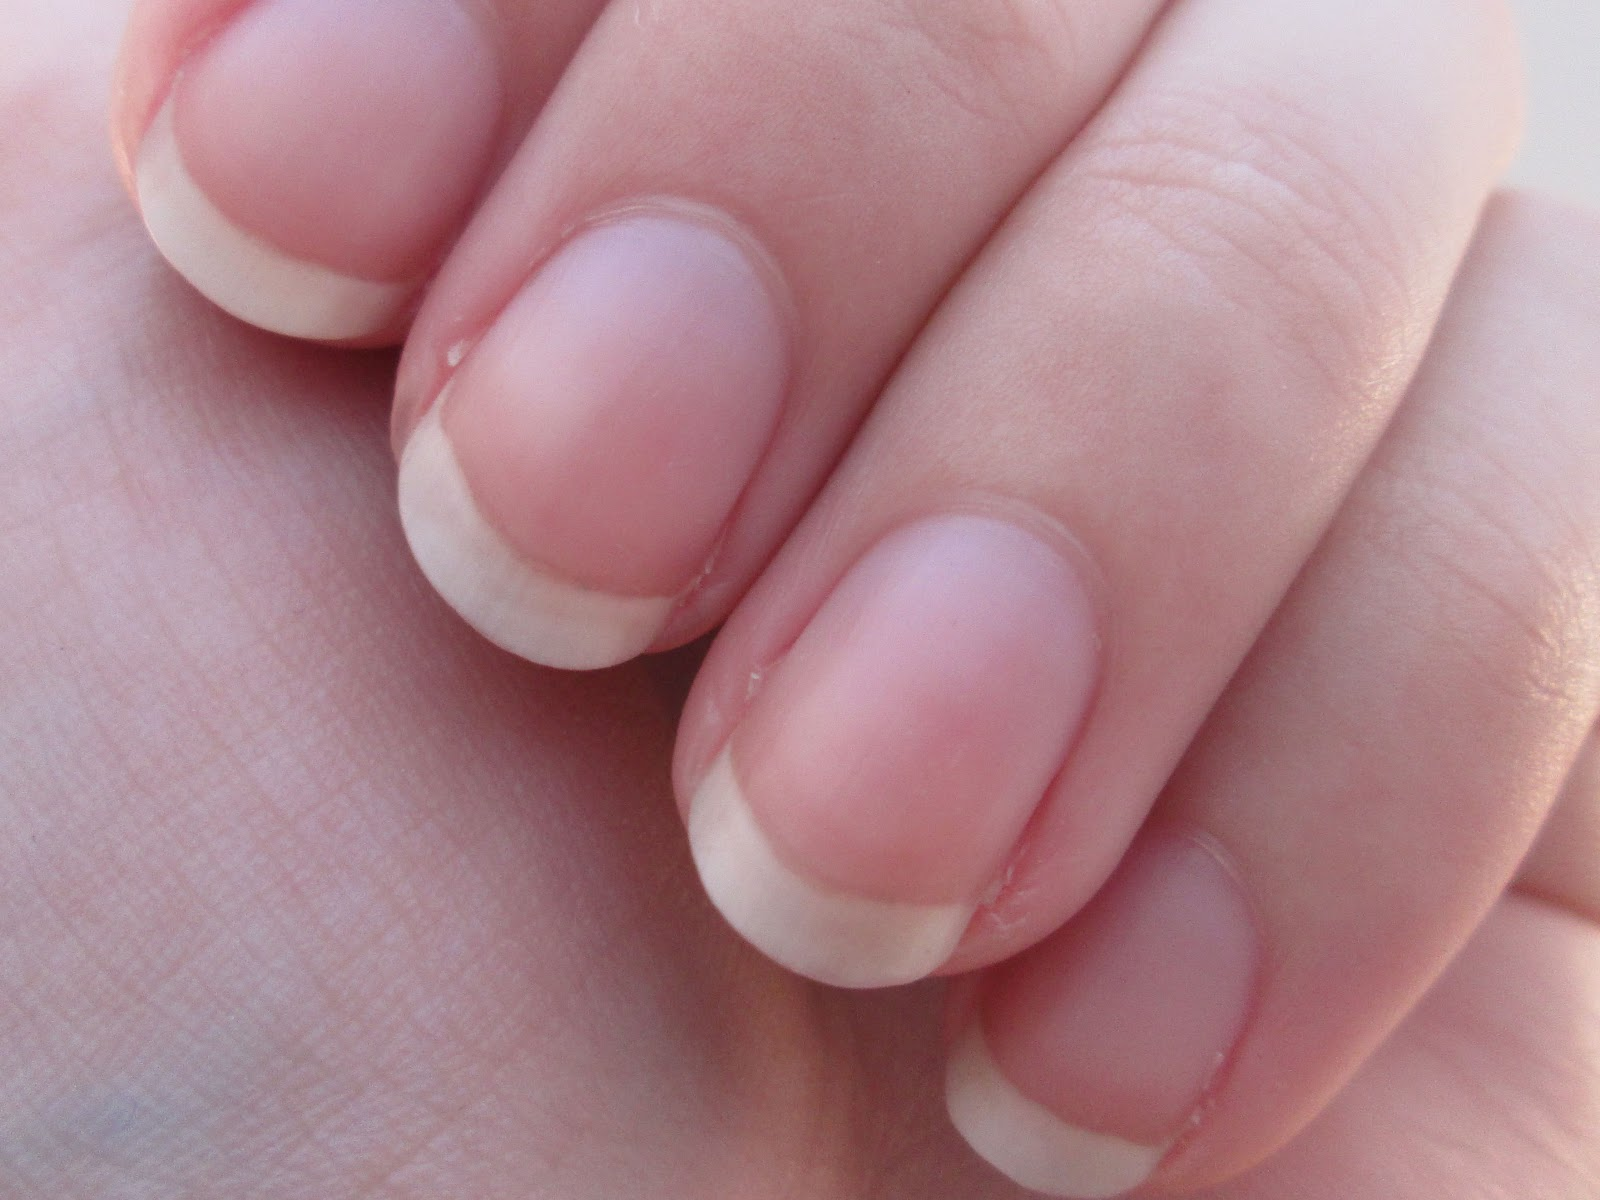 What Could No Moons on Fingernails Mean? | New Health Advisor